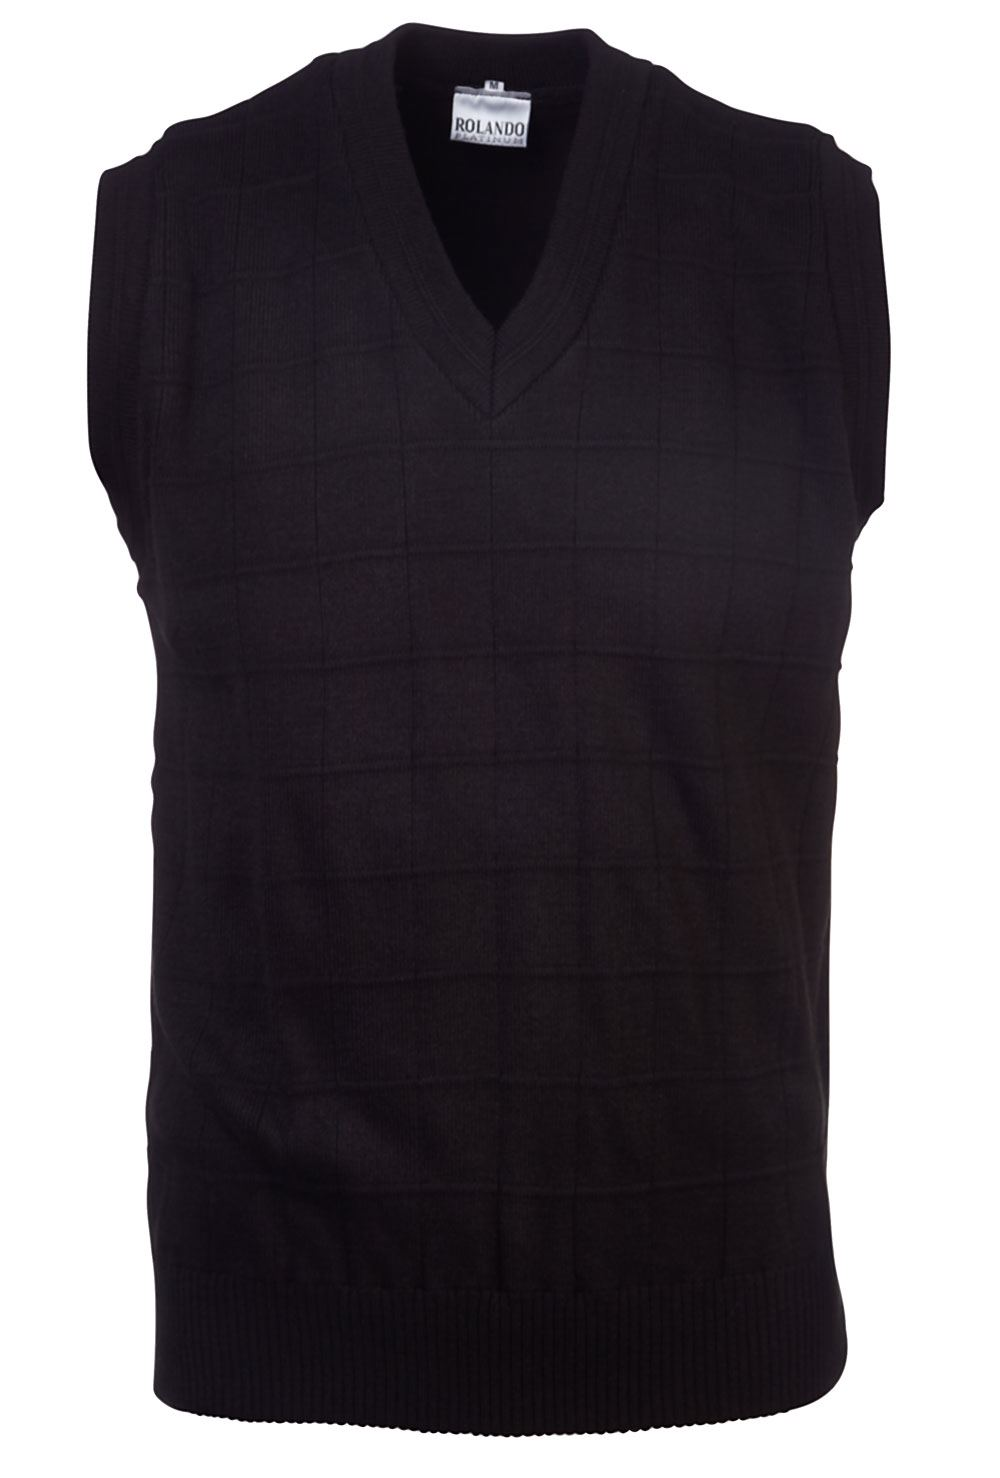 Mens Sleeveless Delux Jersey - Black